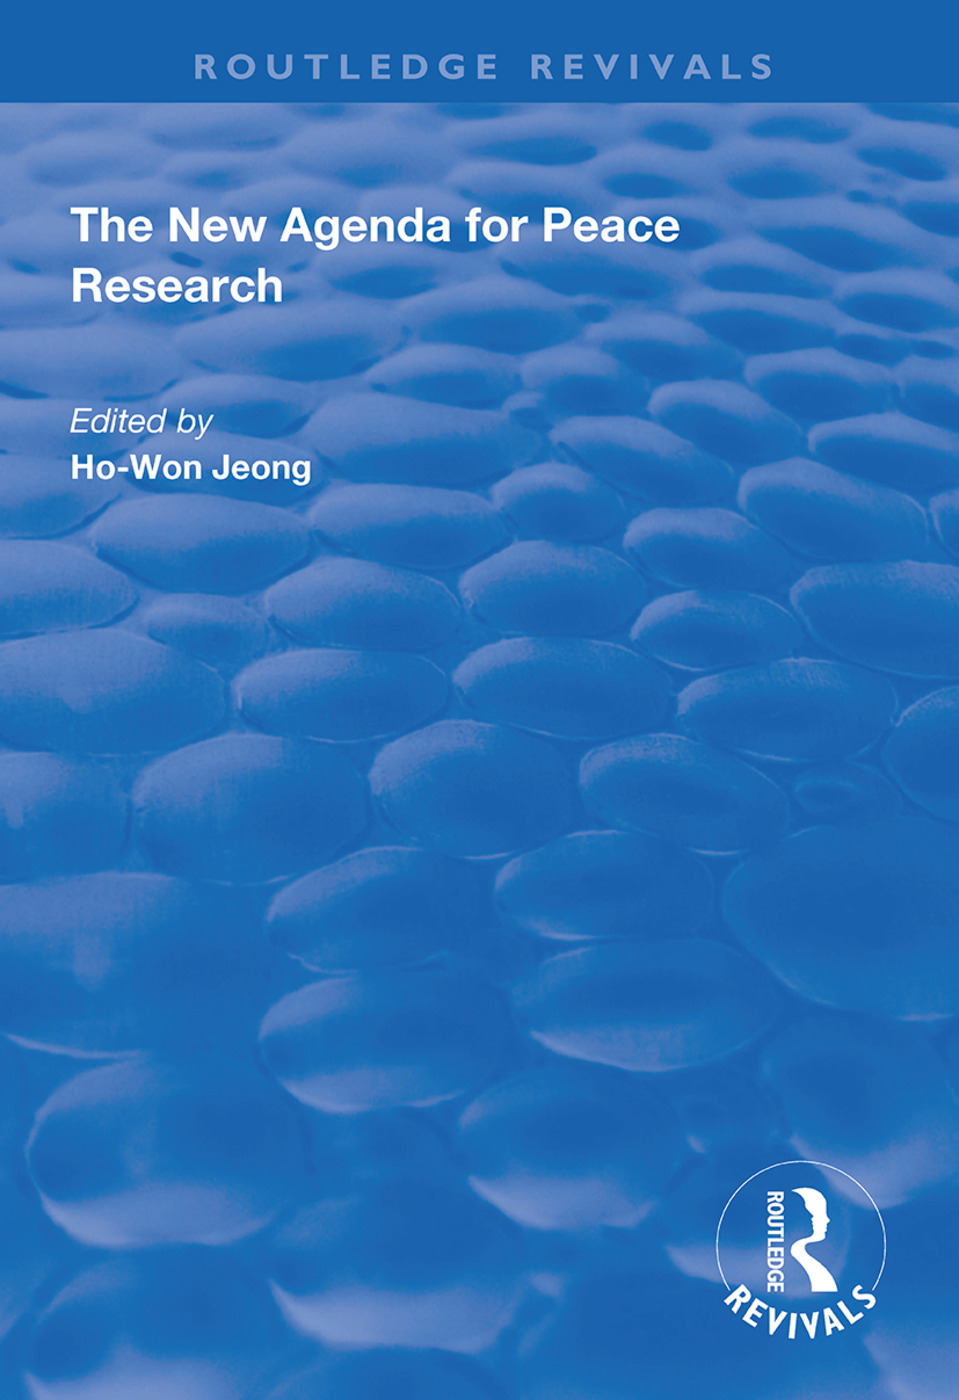 The New Agenda for Peace Research